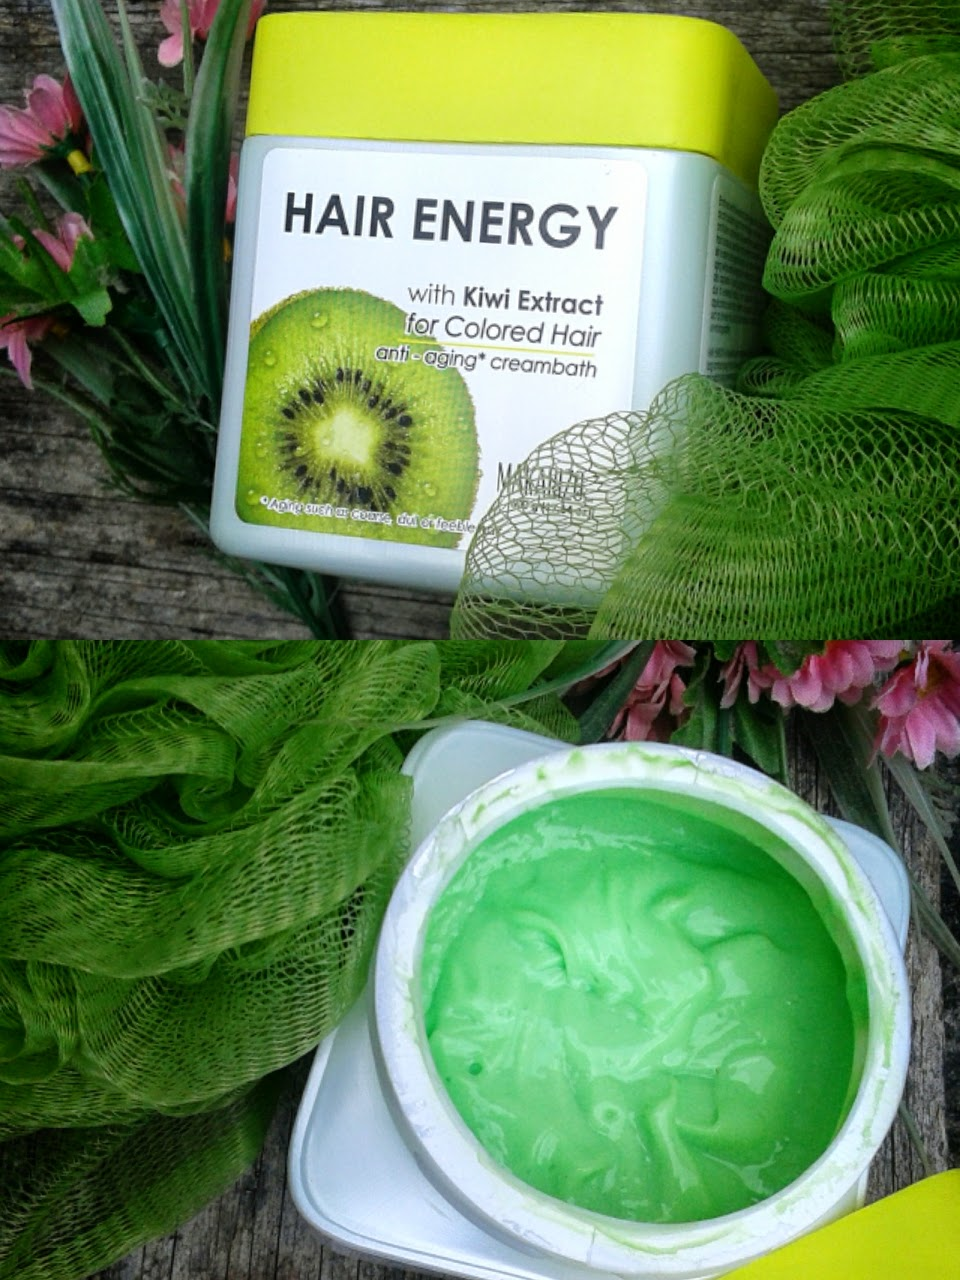 Review Makarizo Hair Energy Anti Aging Creambath With Kiwi For Colored Hair Jurnal Madamabi